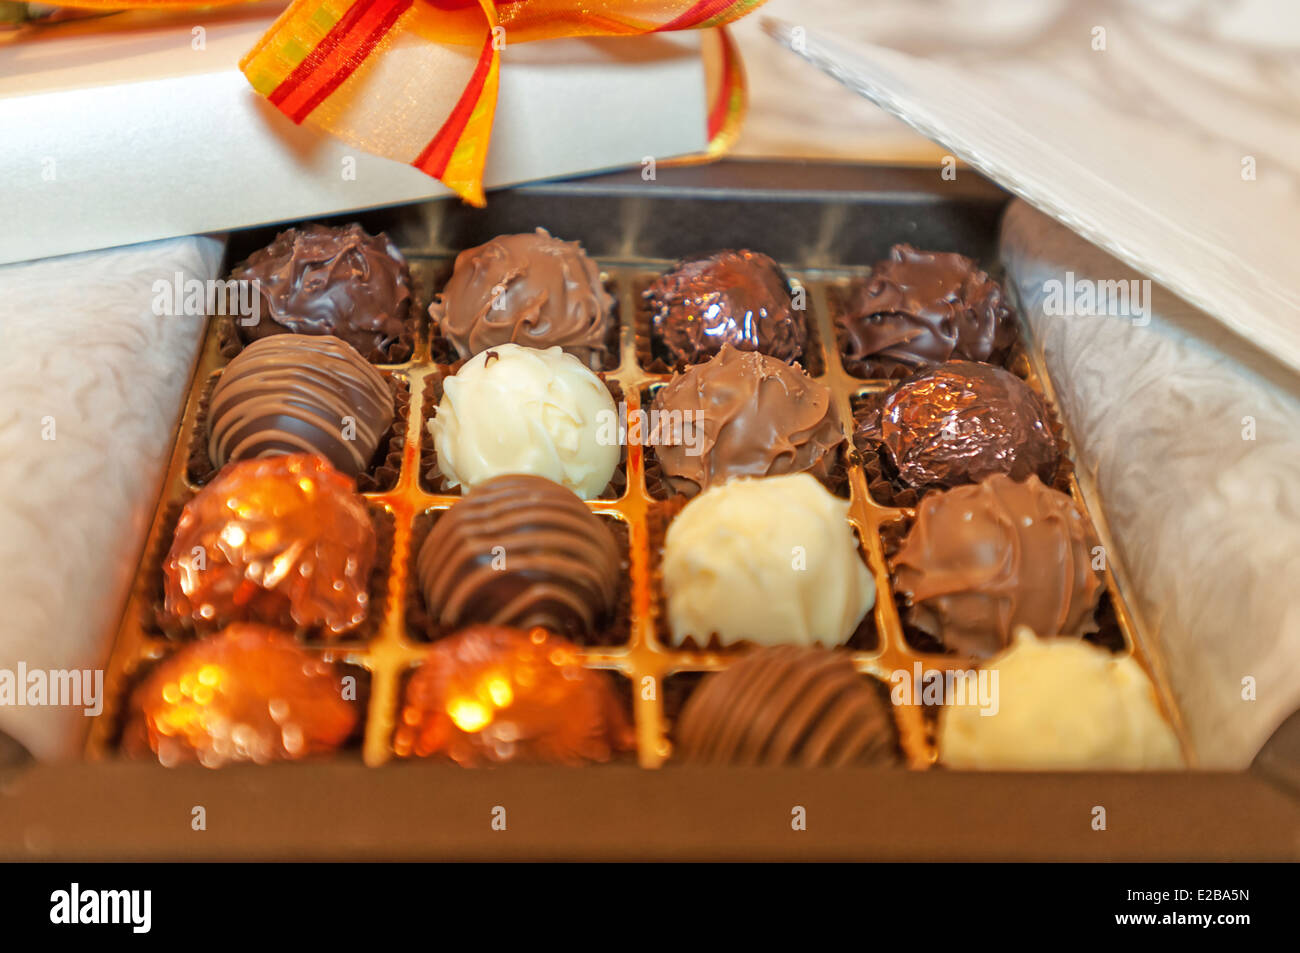 -Bonbons- Switzerland Sweets. - Stock Image